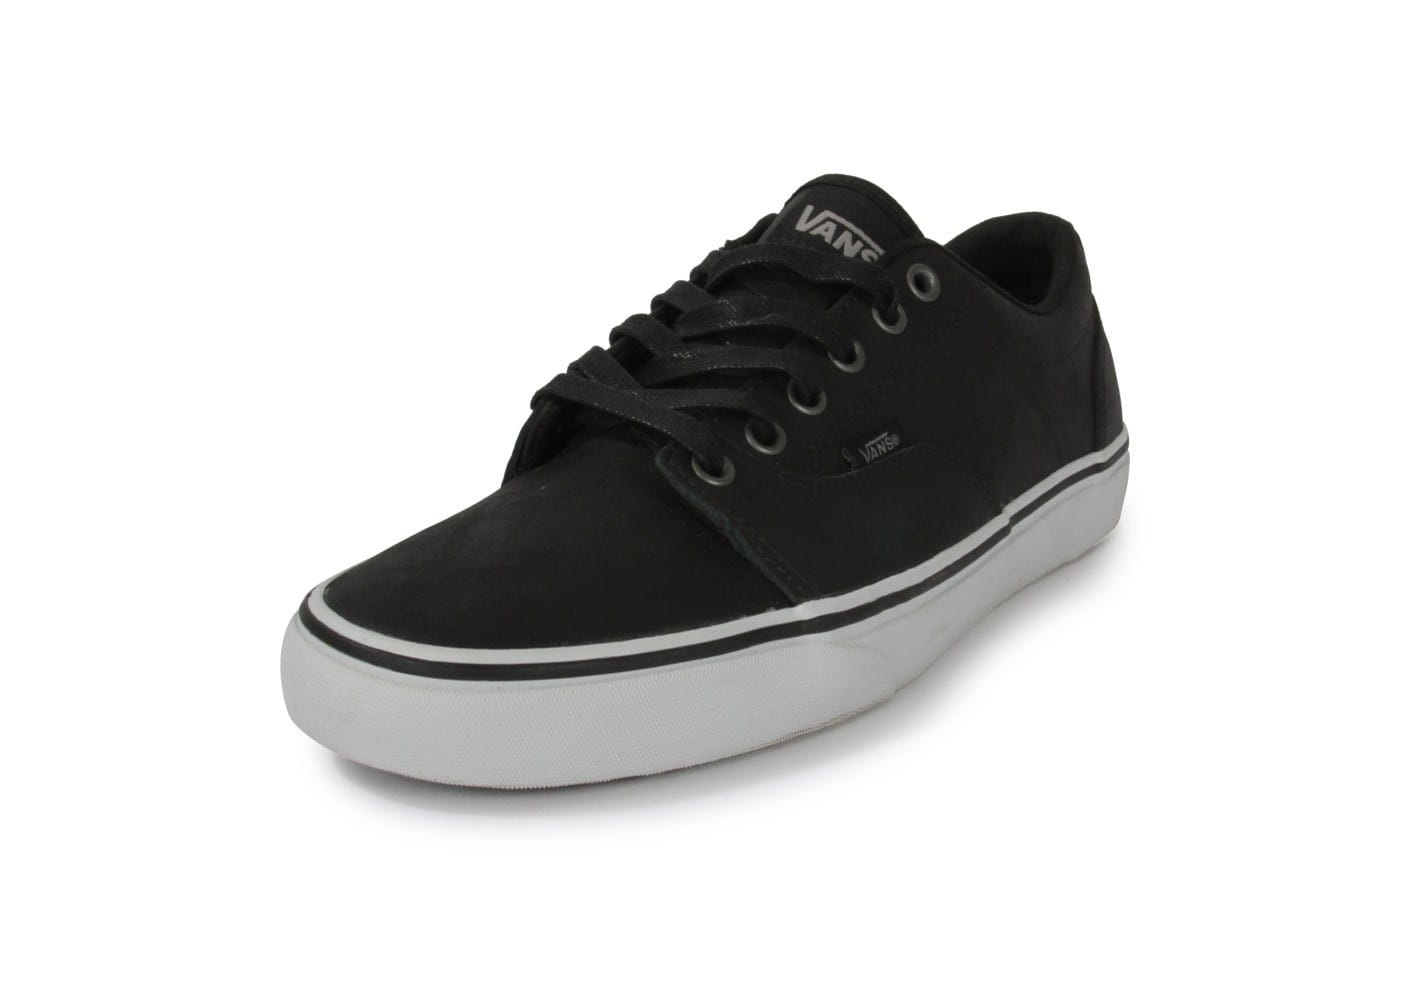 Chaussures Vans Kress blanches Fashion homme qm7p2